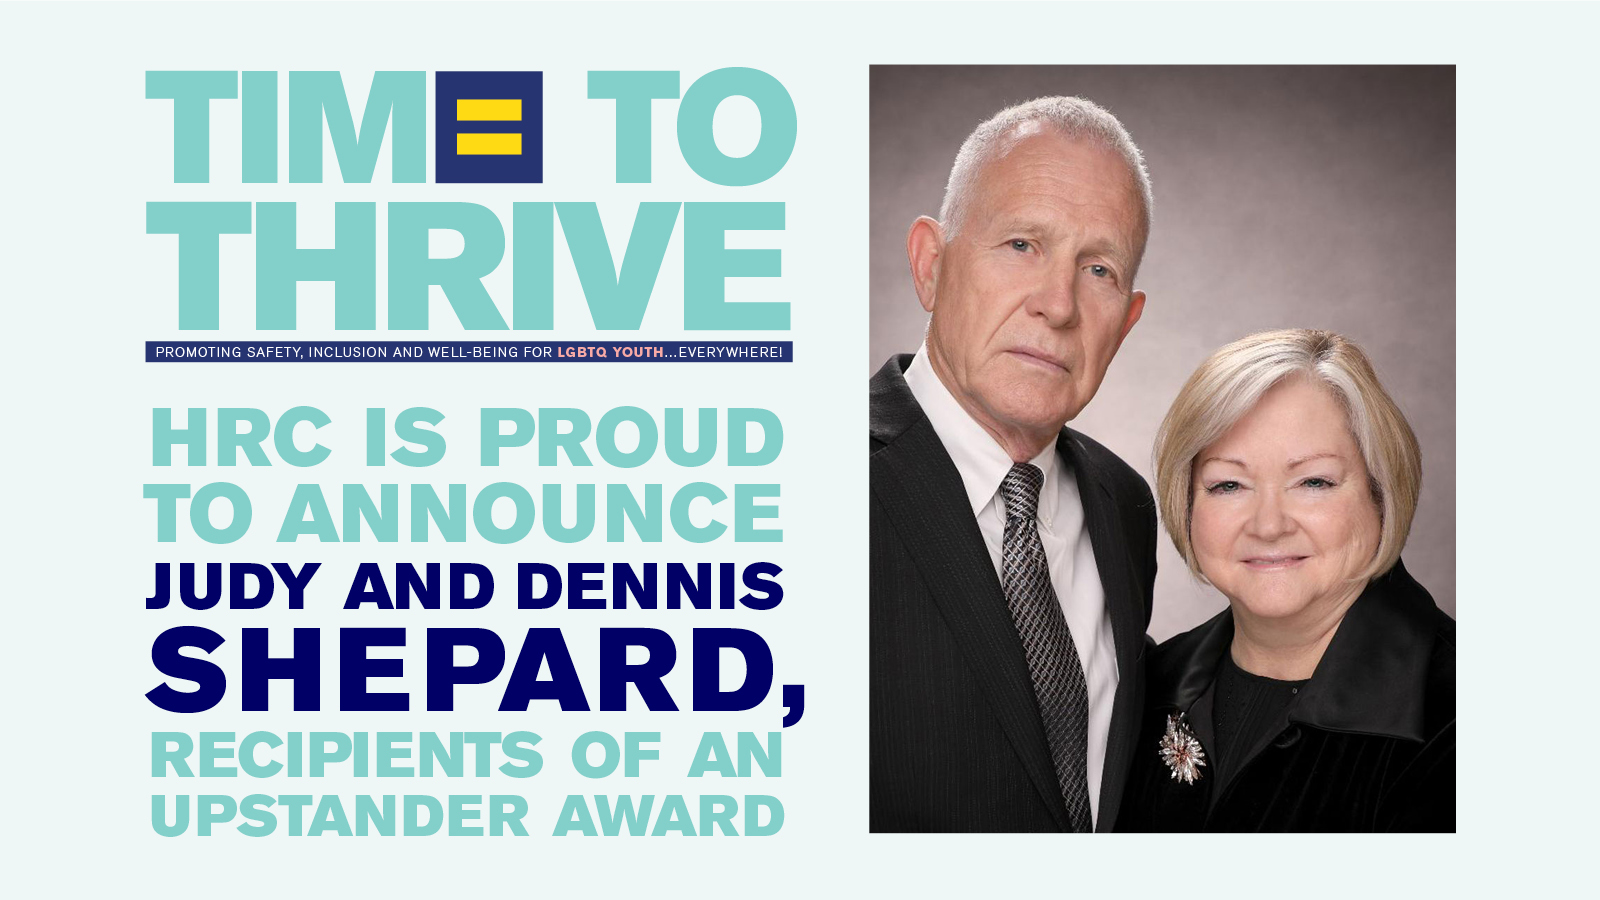 HRC Foundation to Honor Judy and Dennis Shepard For Their Decades of LGBTQ Advocacy